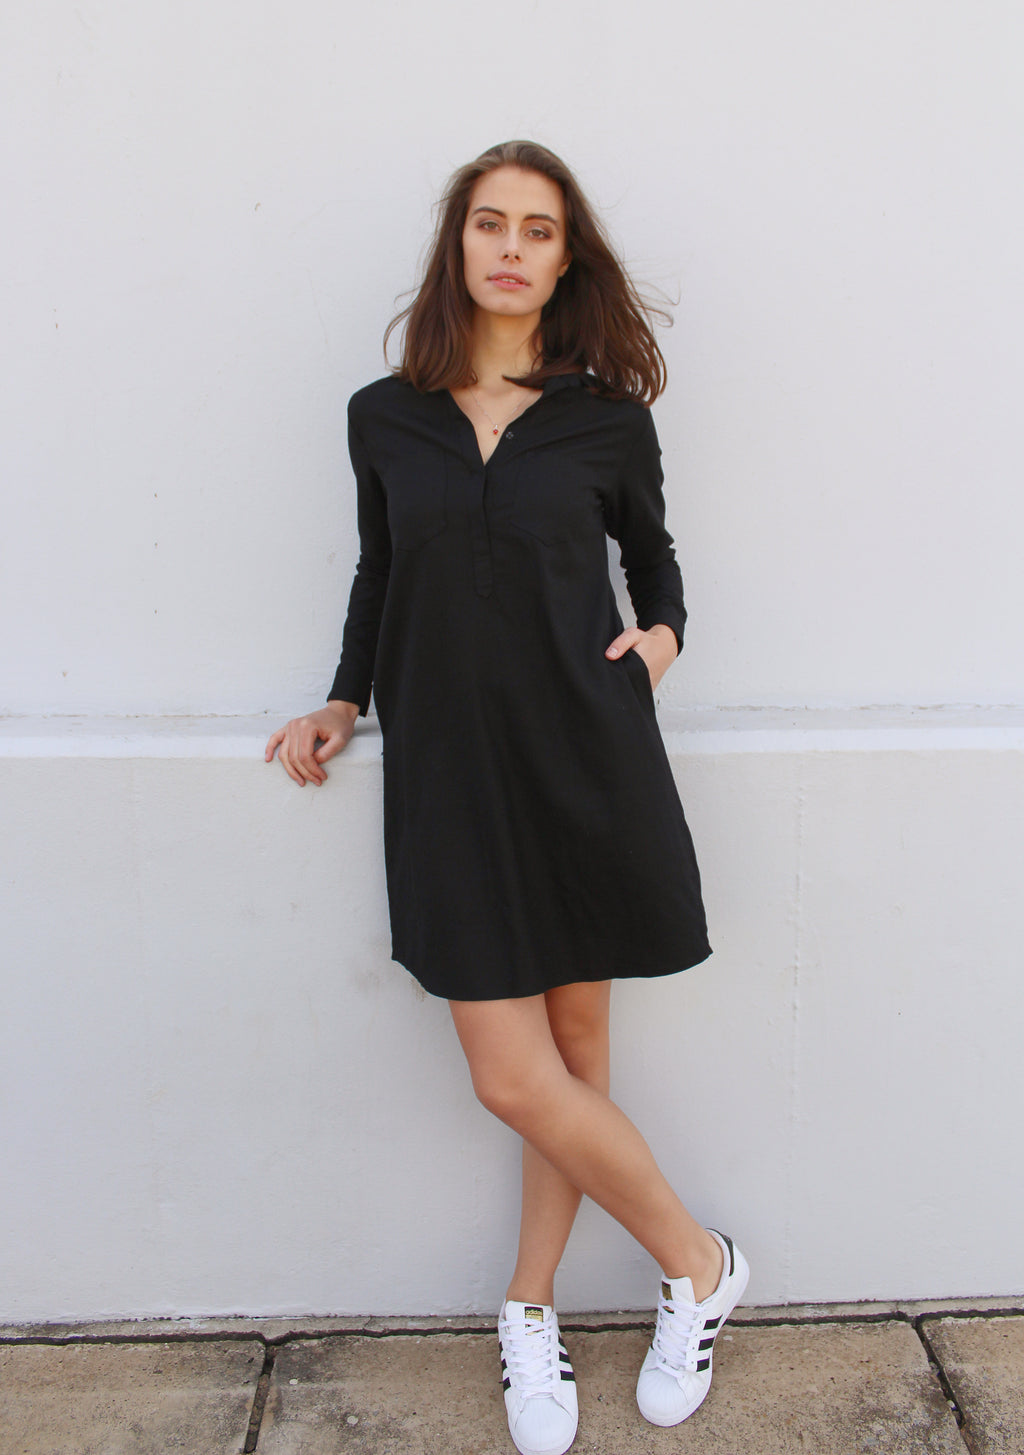 Utility dress - Danielle Frylinck Design